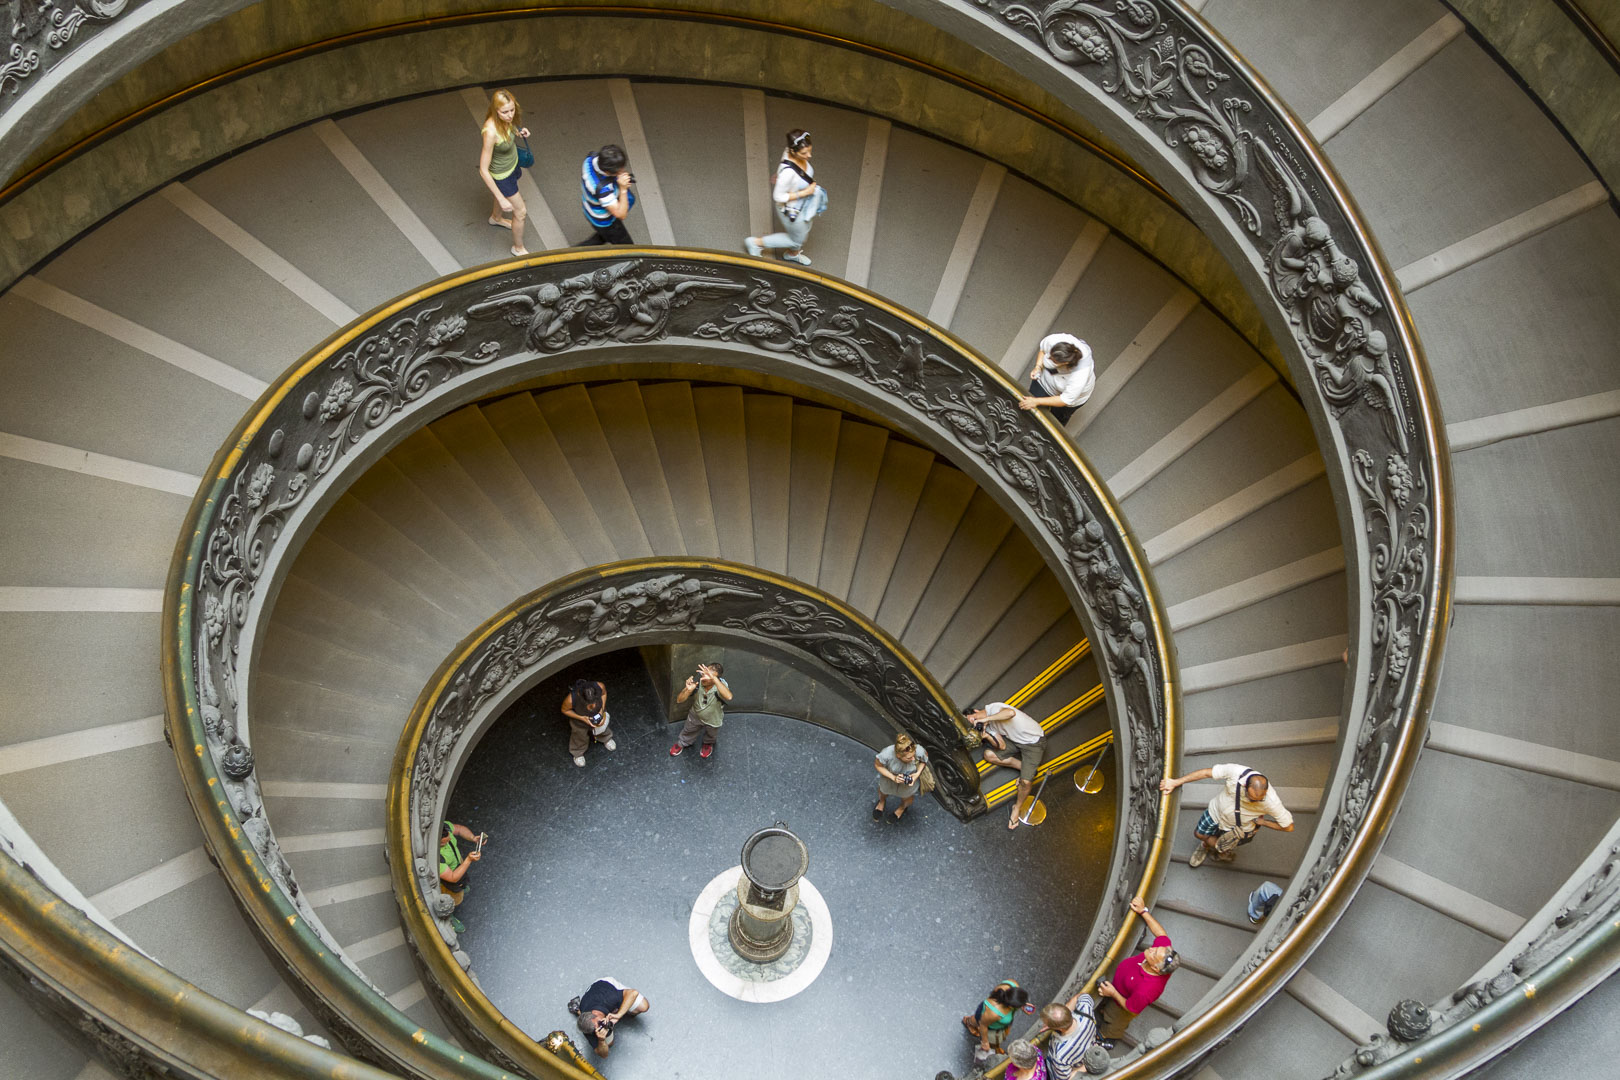 The Spiral Staircase in Vatican Museum, Rome – Italy